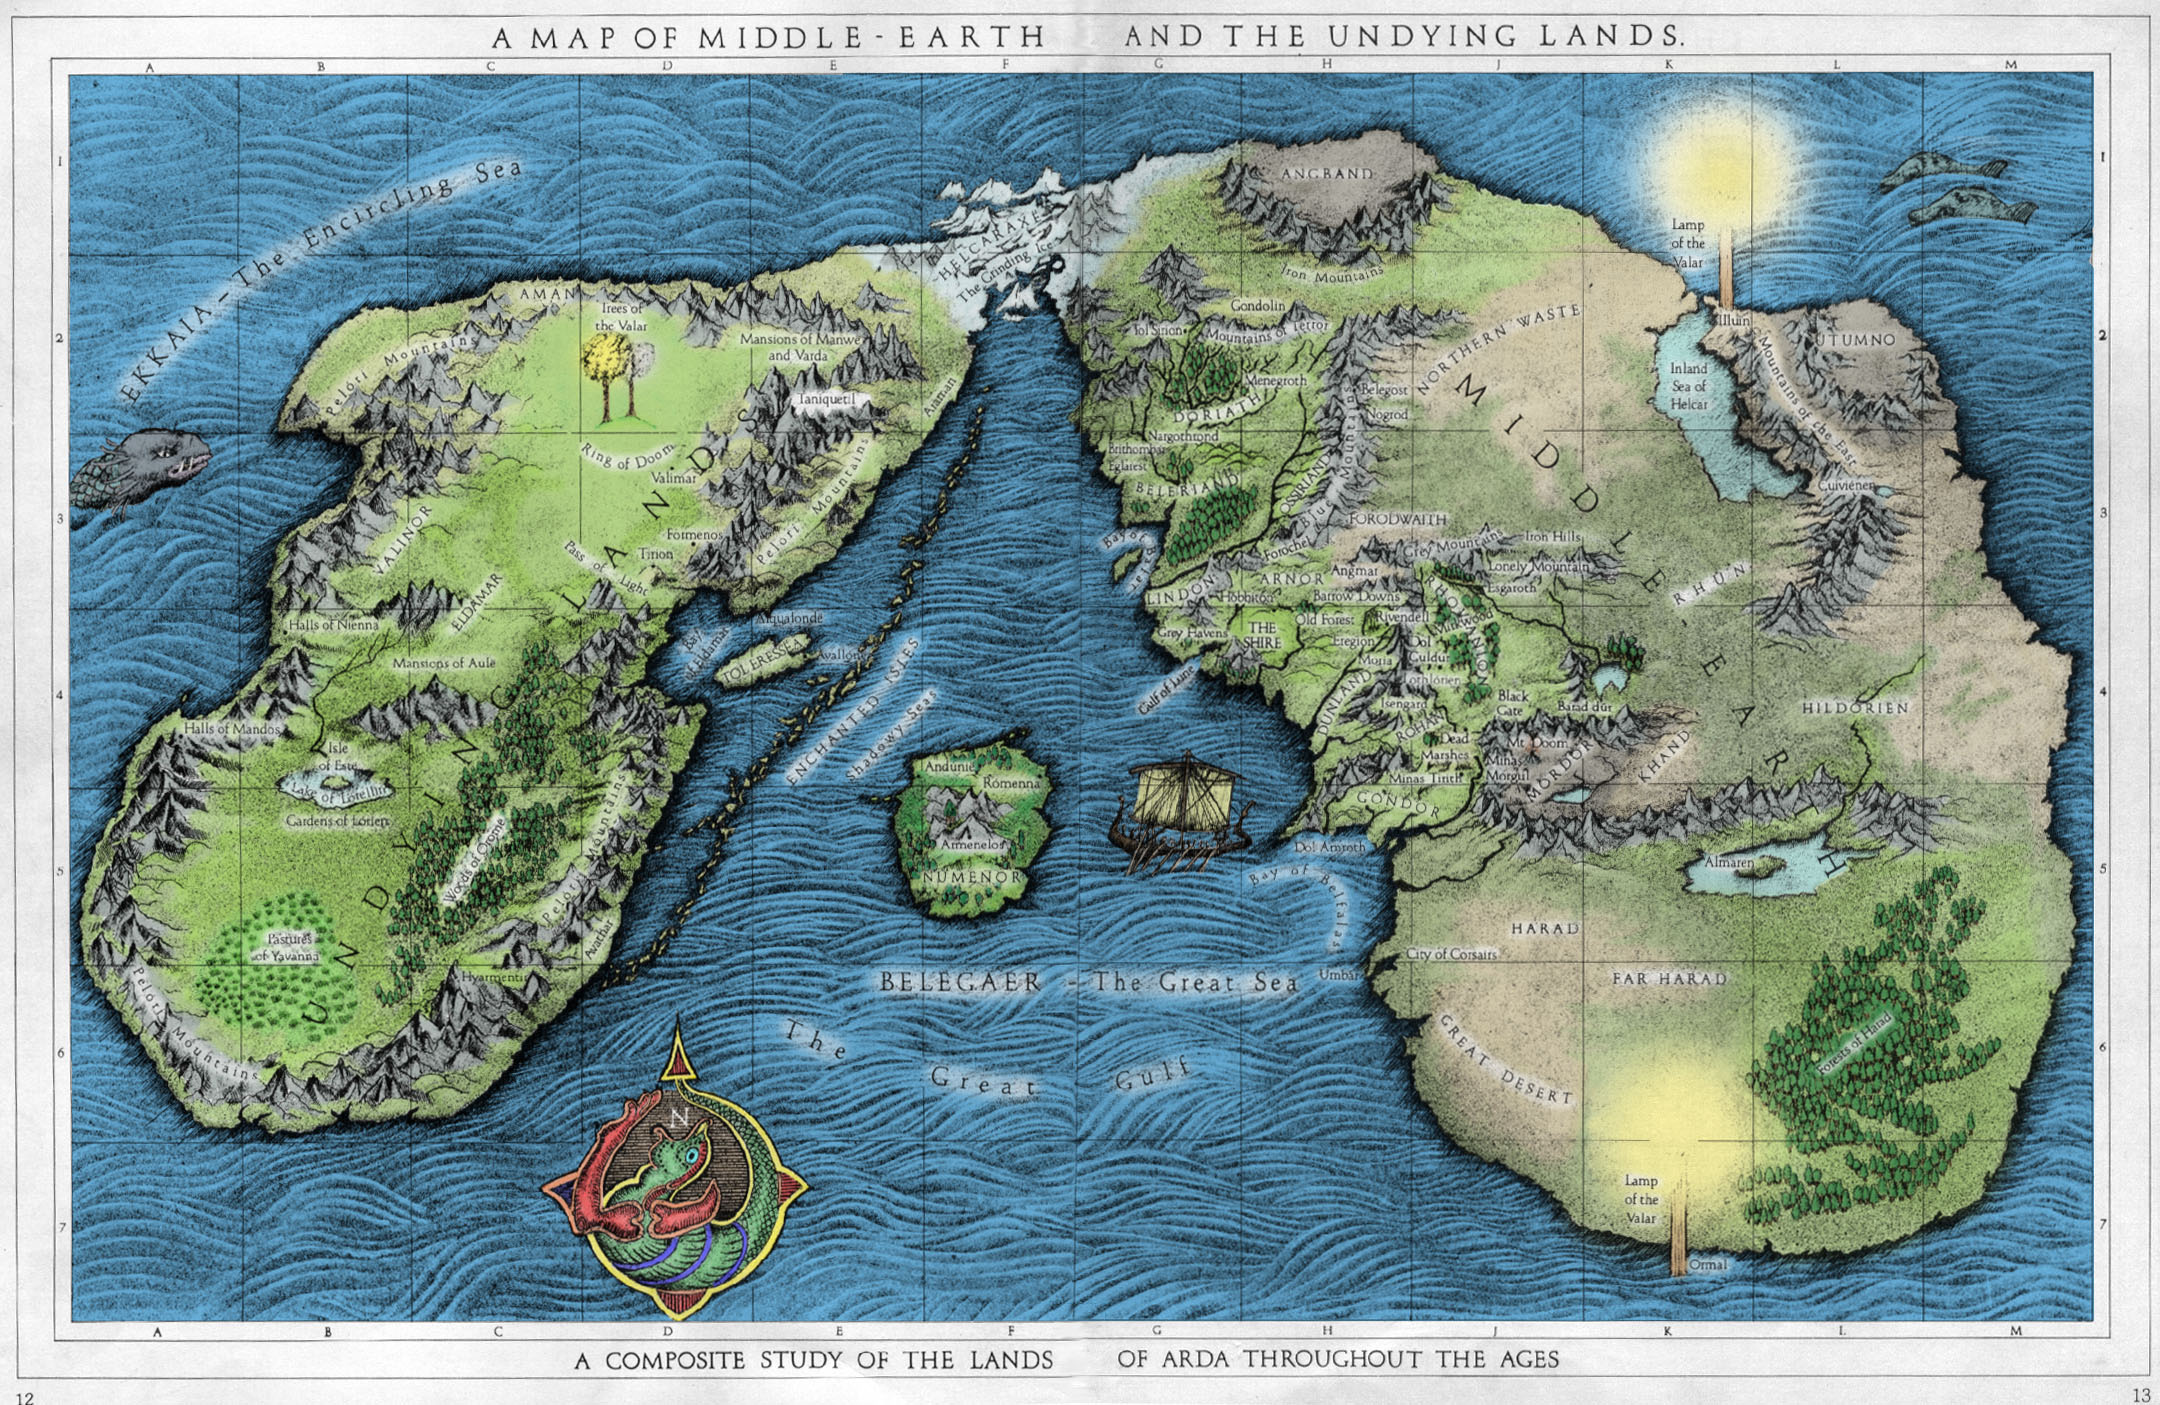 http://aidanmoher.com/blog/wp-content/uploads/2012/11/A_Map_of_Middle-earth_and_the_Undying_Lands_color.jpeg